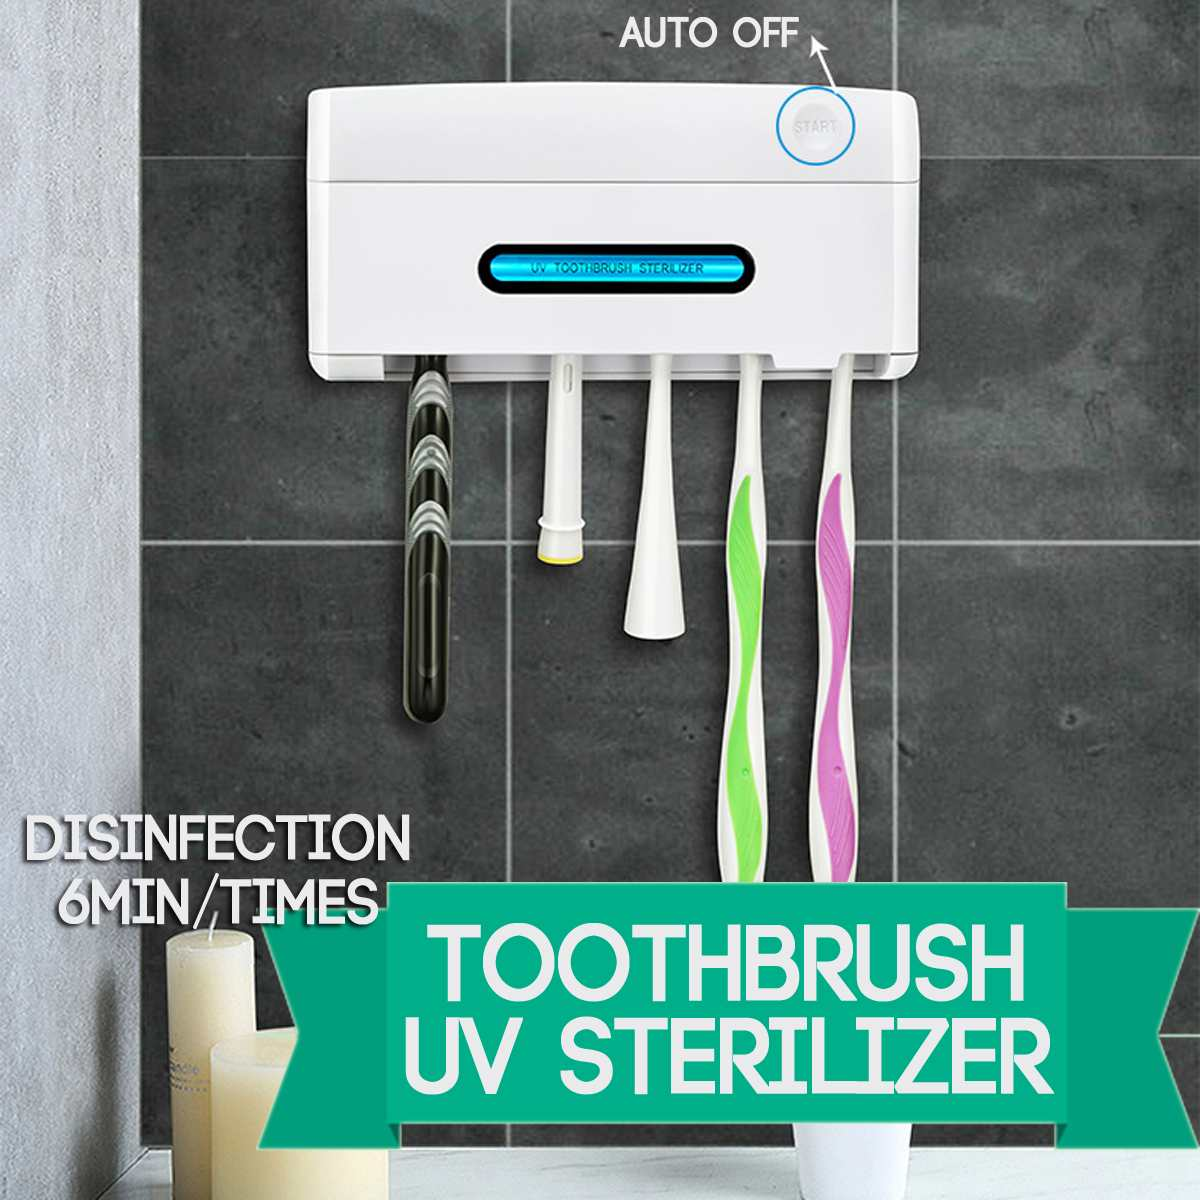 5 In 1 UV Light Ultraviolet Toothbrush Sterilizer Toothbrush Holder Automatic Toothpaste Squeezers Dispenser Home Bathroom Set